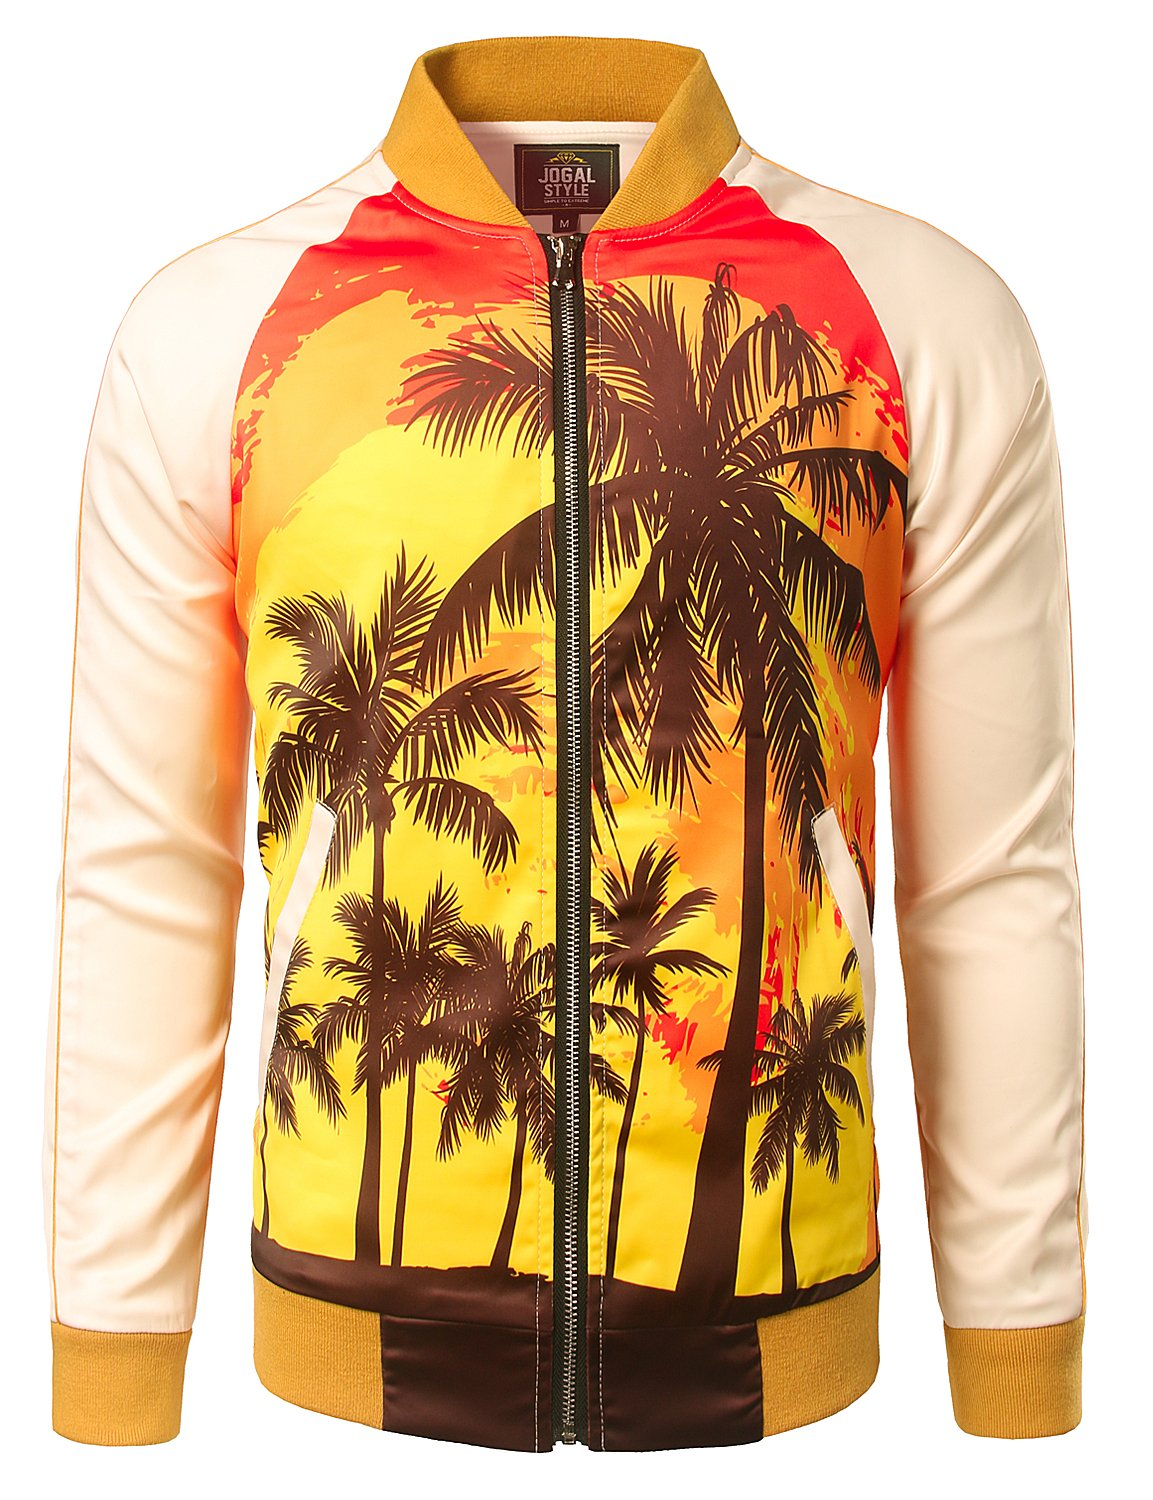 JOGAL Mens Zipper Bomber Jacket Lettermen Style Sunset Coconut Tree Couples Top Medium